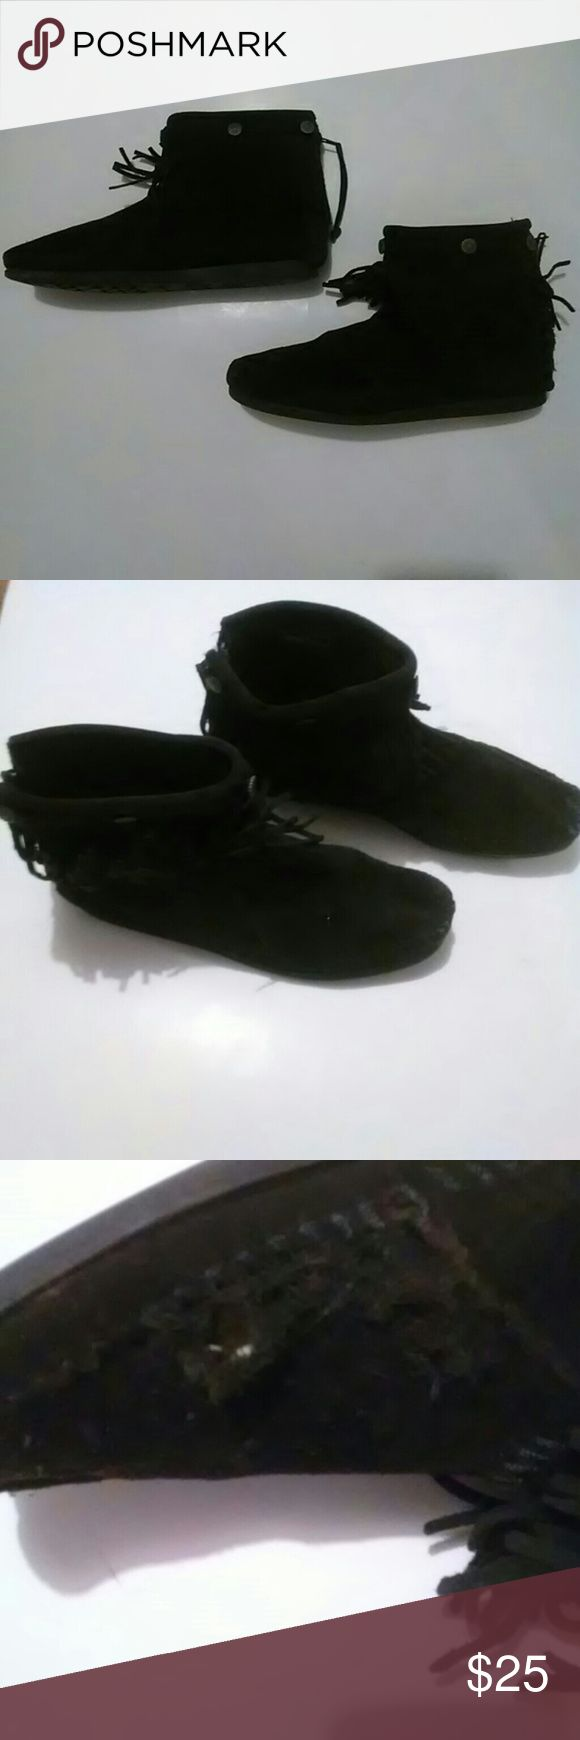 MINNETONKA MOCCASIN ANKLE BOOT Black ankle boots needs a little TLC on the left boot.. It has a hole and need stitching..  Size: 9 Minnetonka Shoes Ankle Boots & Booties